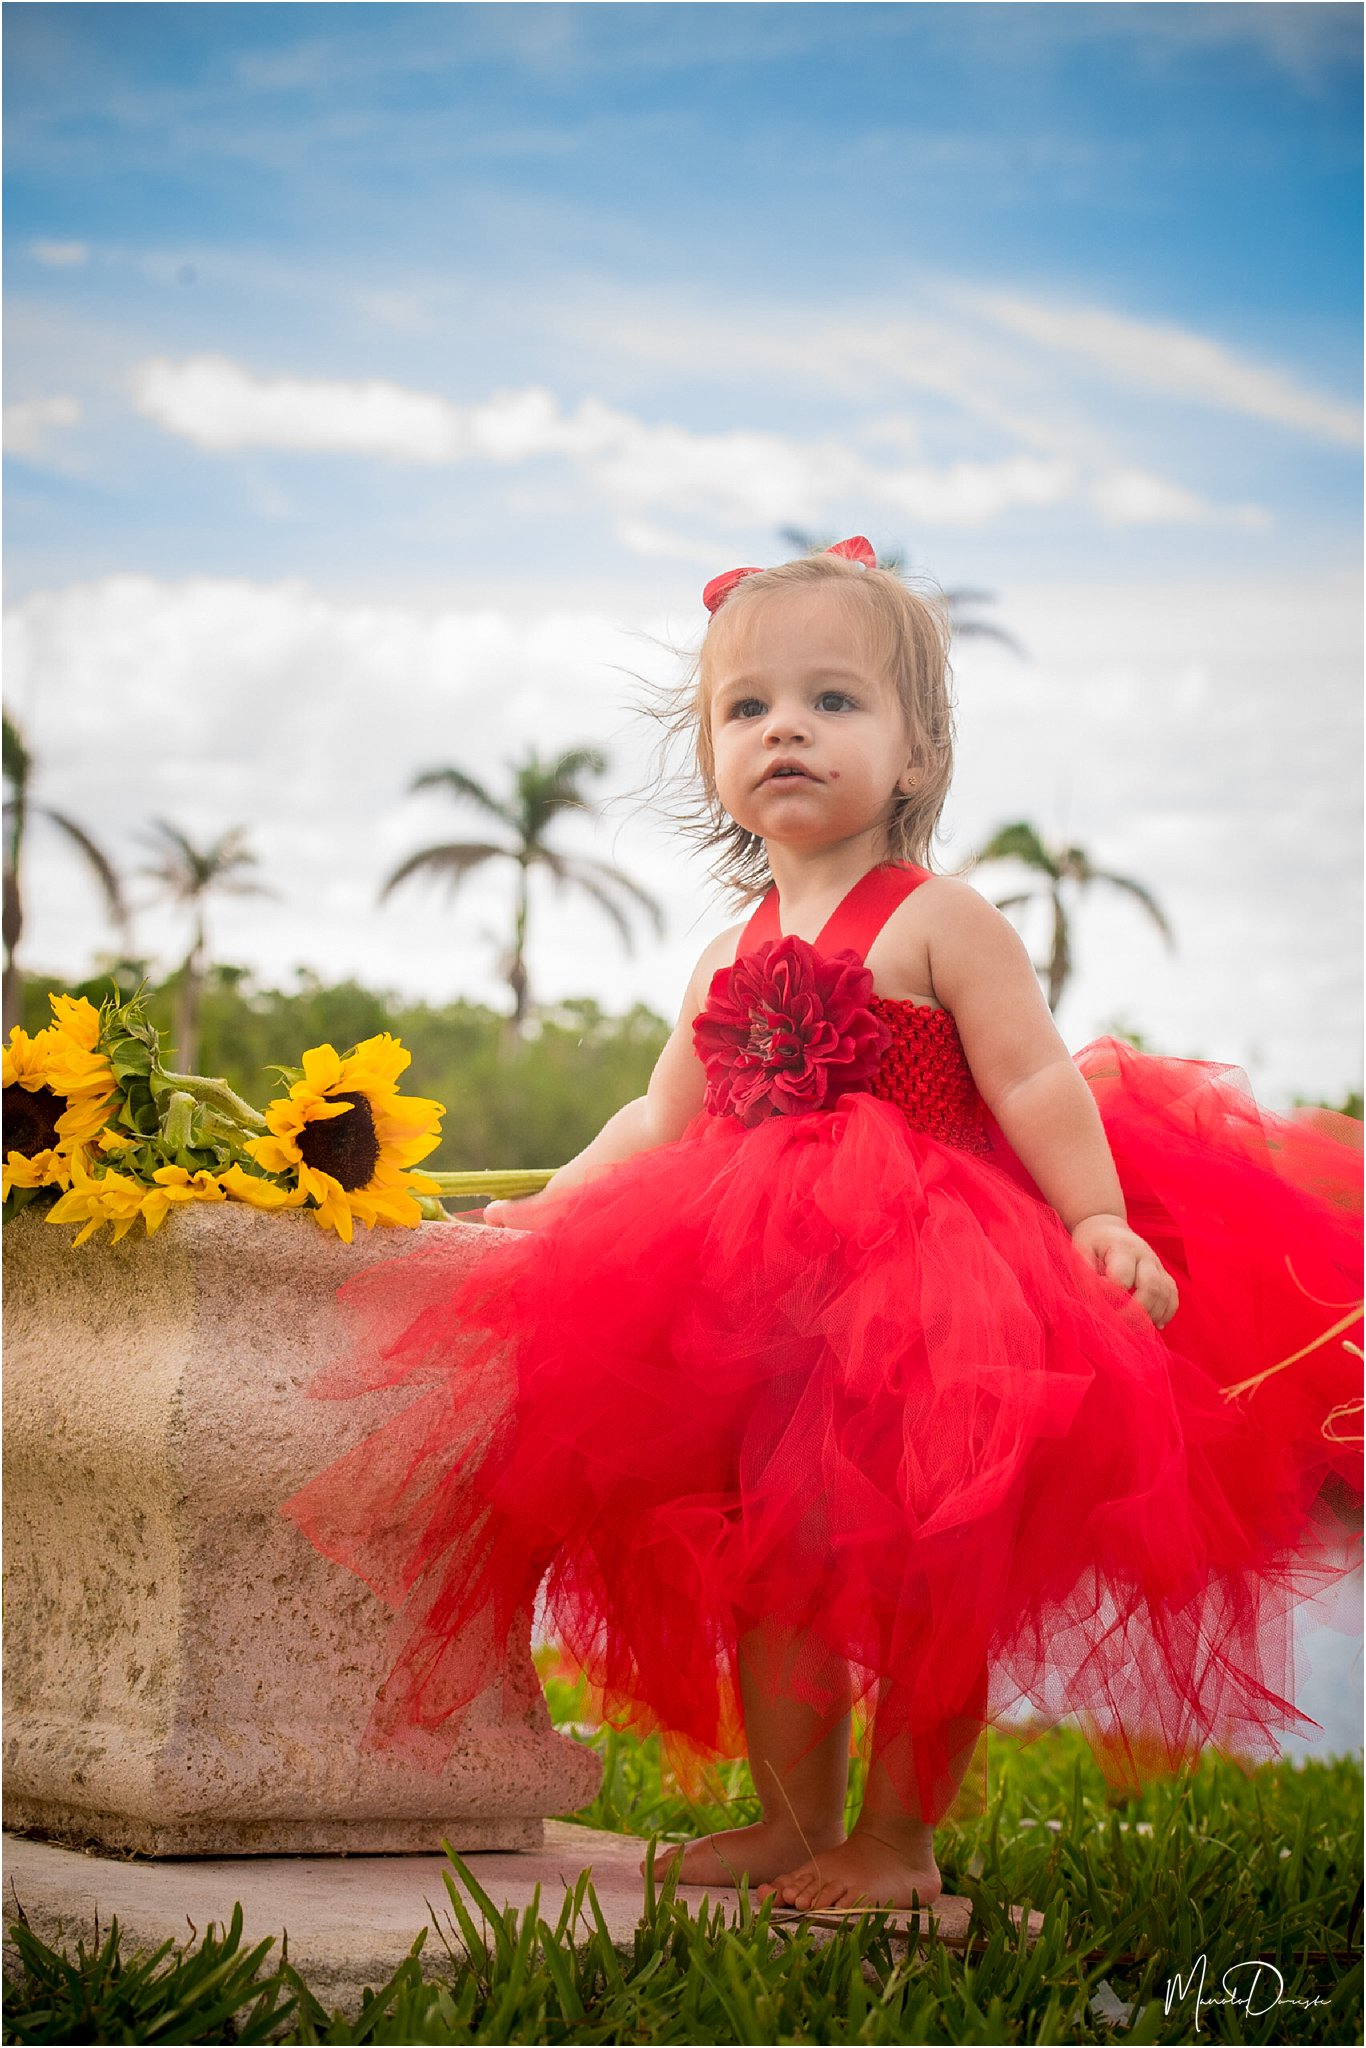 0143_ManoloDoreste_InFocusStudios_Wedding_Family_Photography_Miami_MiamiPhotographer.jpg